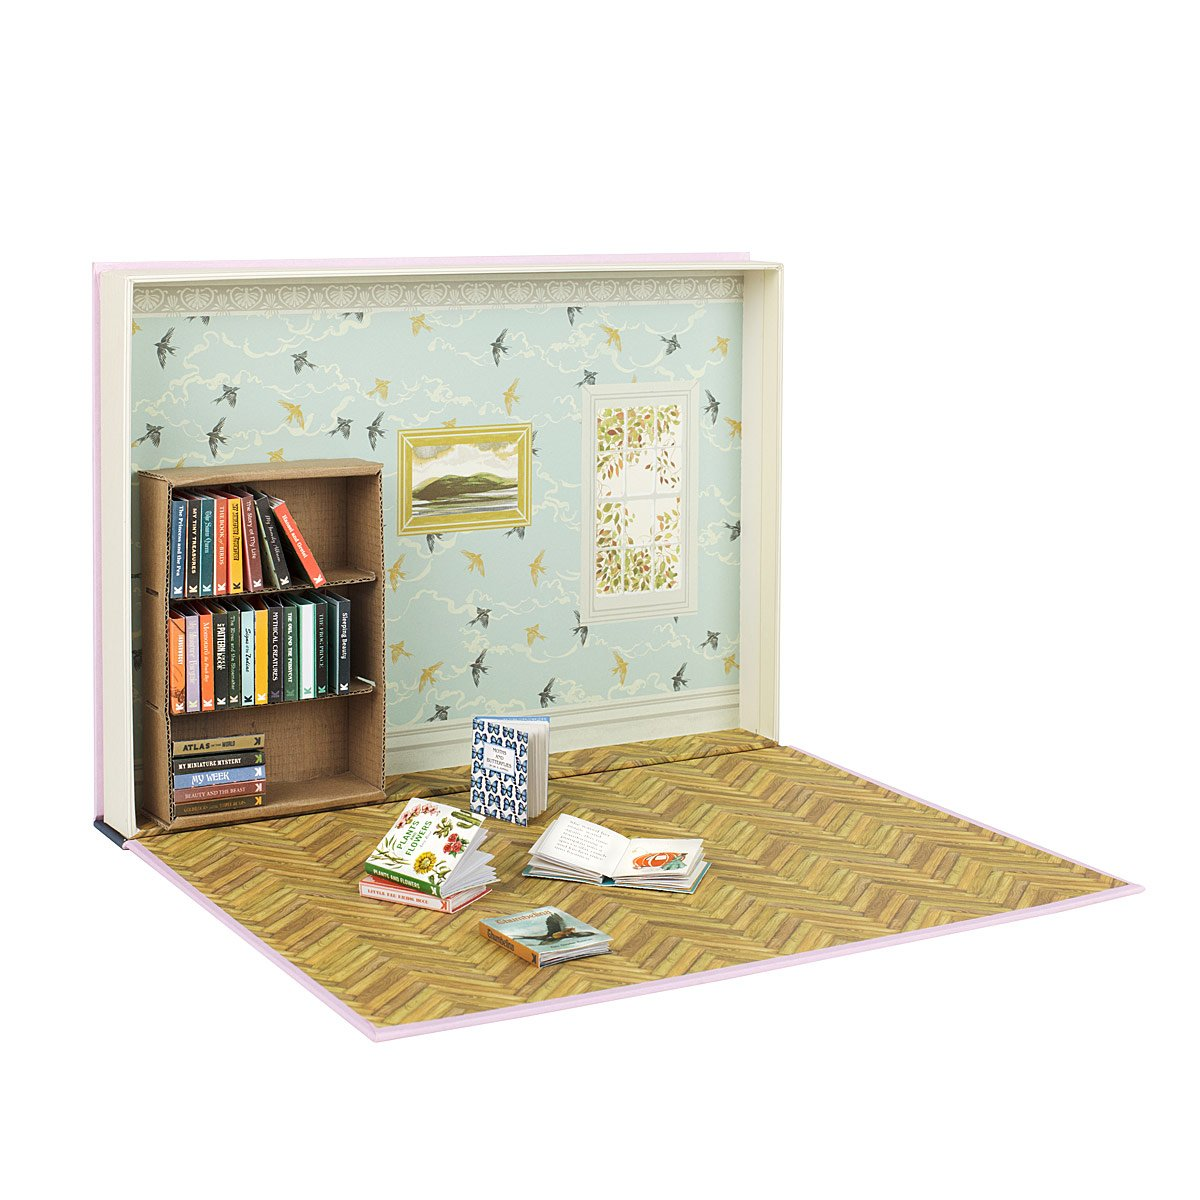 My Miniature Library Mini Book Dollhouse Kit Uncommongoods